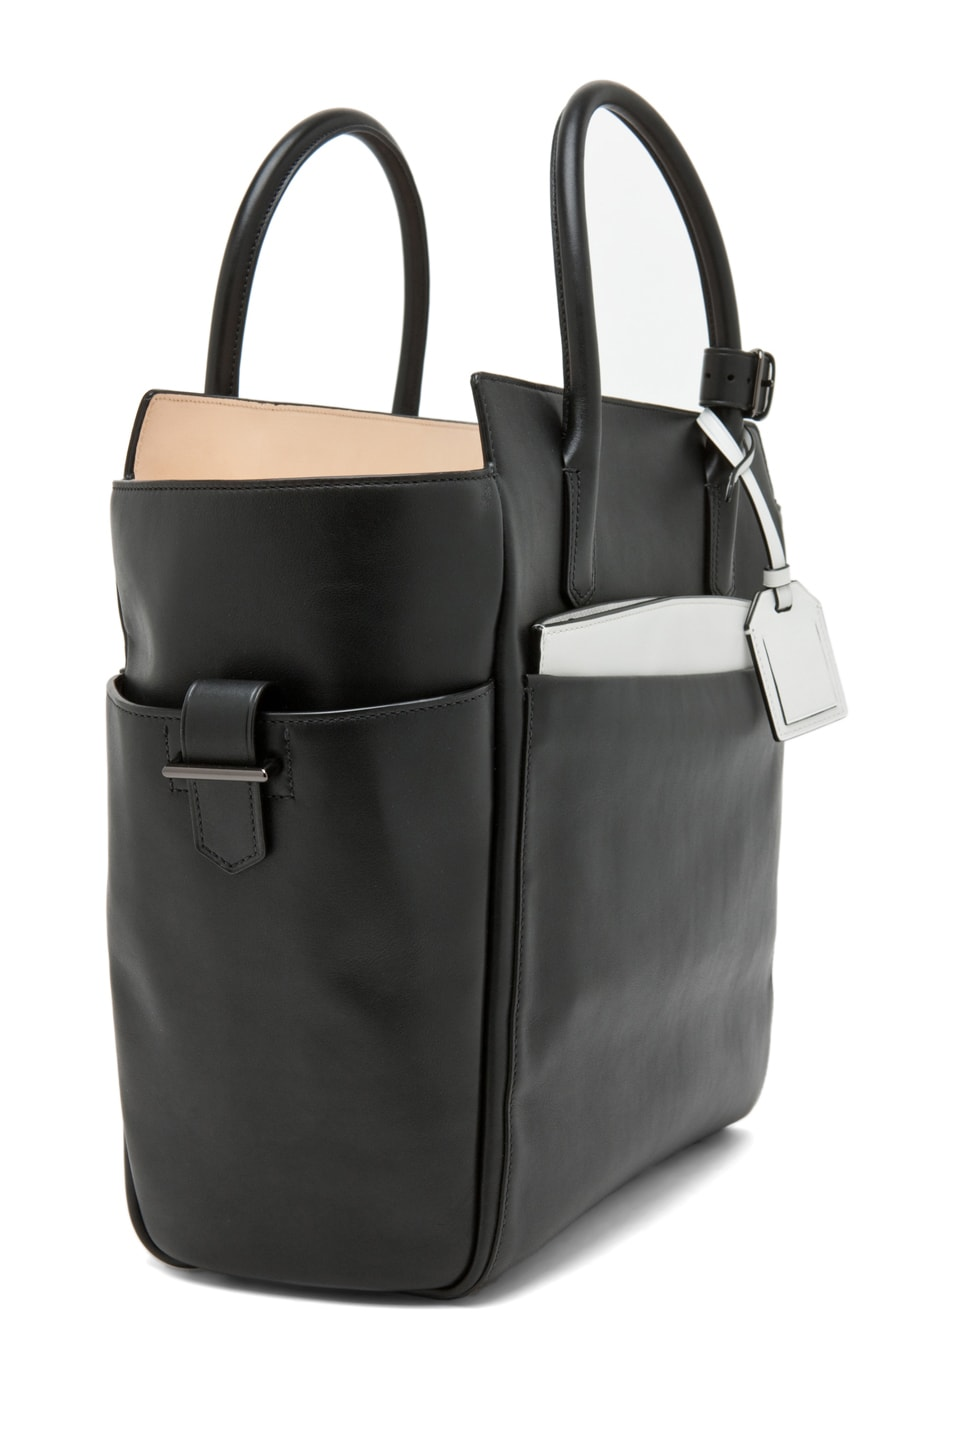 Image 3 of Reed Krakoff Atlantique in Black/White Multi